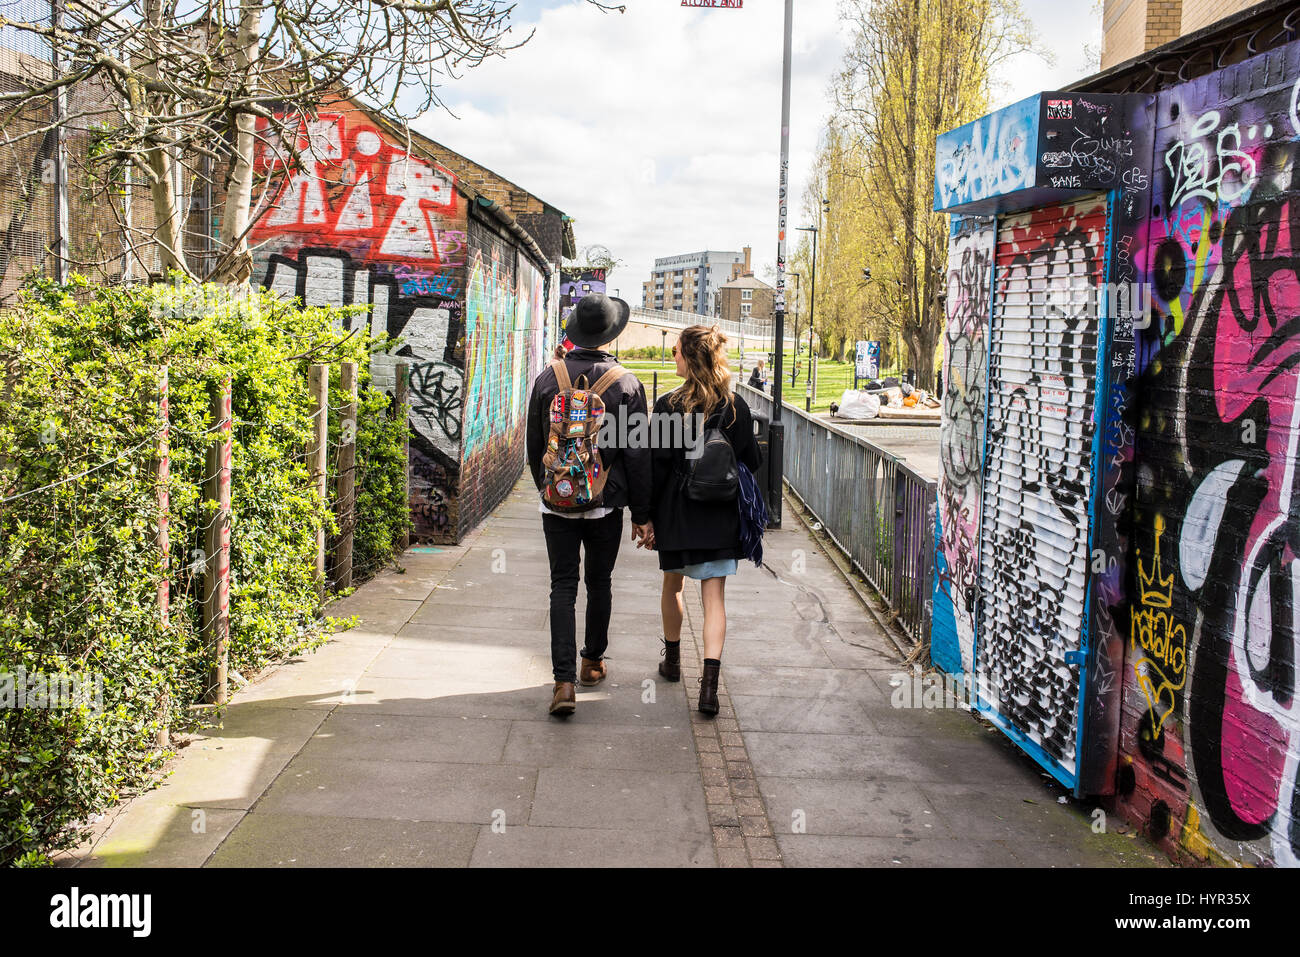 Hipster couple from behind walking in Brick Lane, Shoreditch, London, UK. - Stock Image